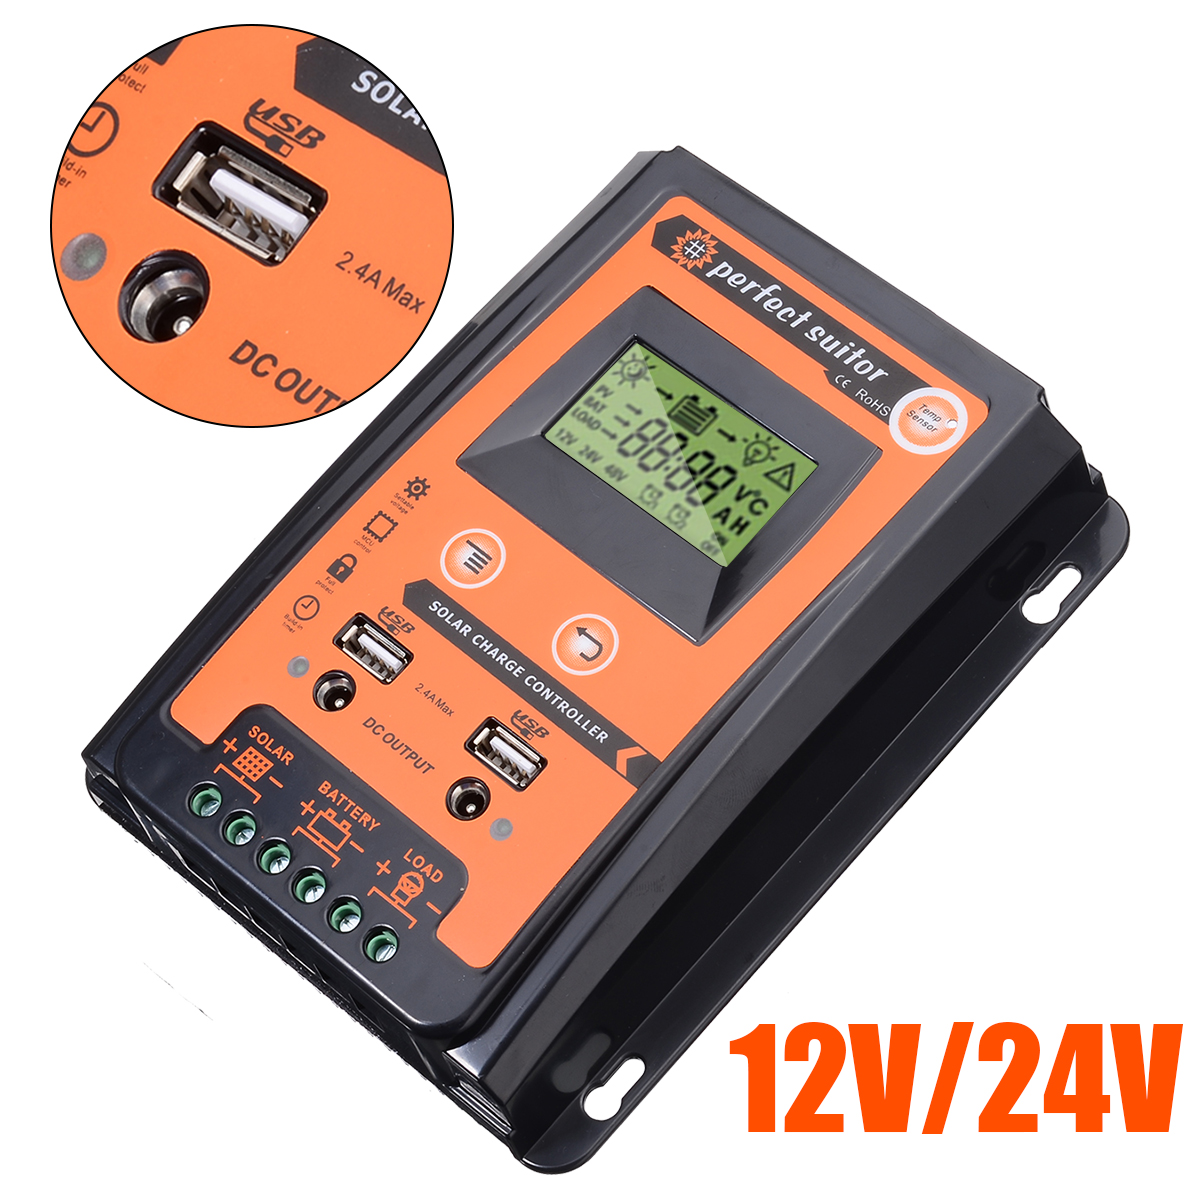 12V/24V 30A Durable MPPT Solar Charge Controller Dual USB LCD Display Solar Panel Battery Regulator PWM Solar Controller